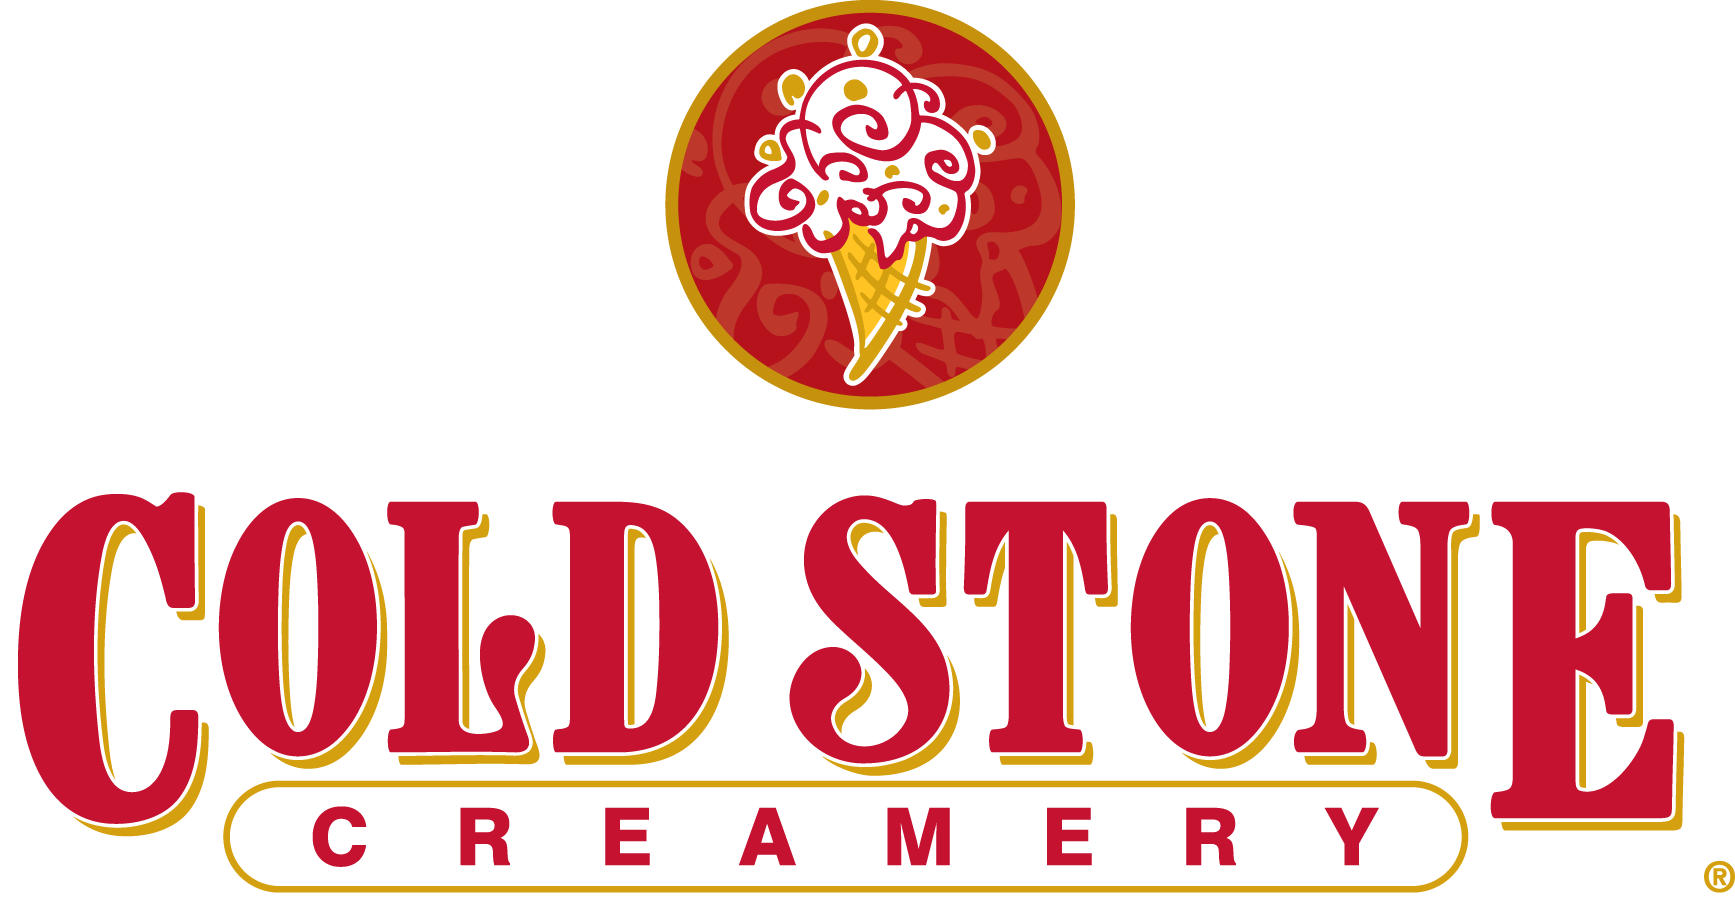 What Is a Cold Stone Creamery Franchise? One of the nation's premier ice cream franchises is a beloved brand with an even brighter future. The Cold Stone Creamery® ice cream franchise has captivated the sweet tooth of customers around the world, and it continues to be a bright brand in the $8 billion ice cream industry, according to IBIS World.